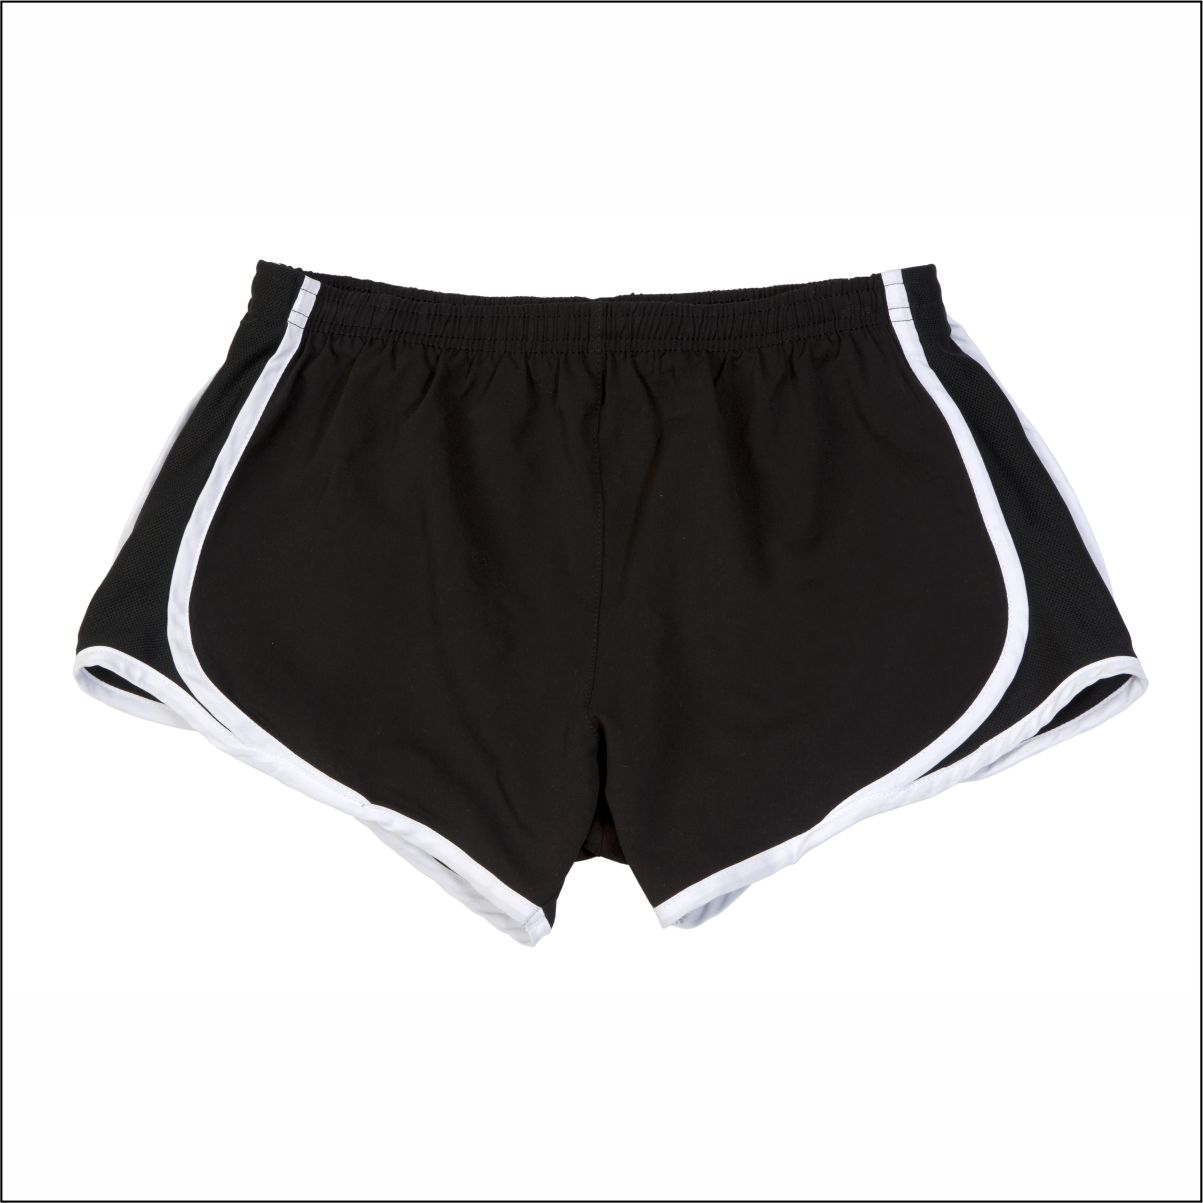 REQUIRED* Harwood Jr. High Black running shorts with white trim ...